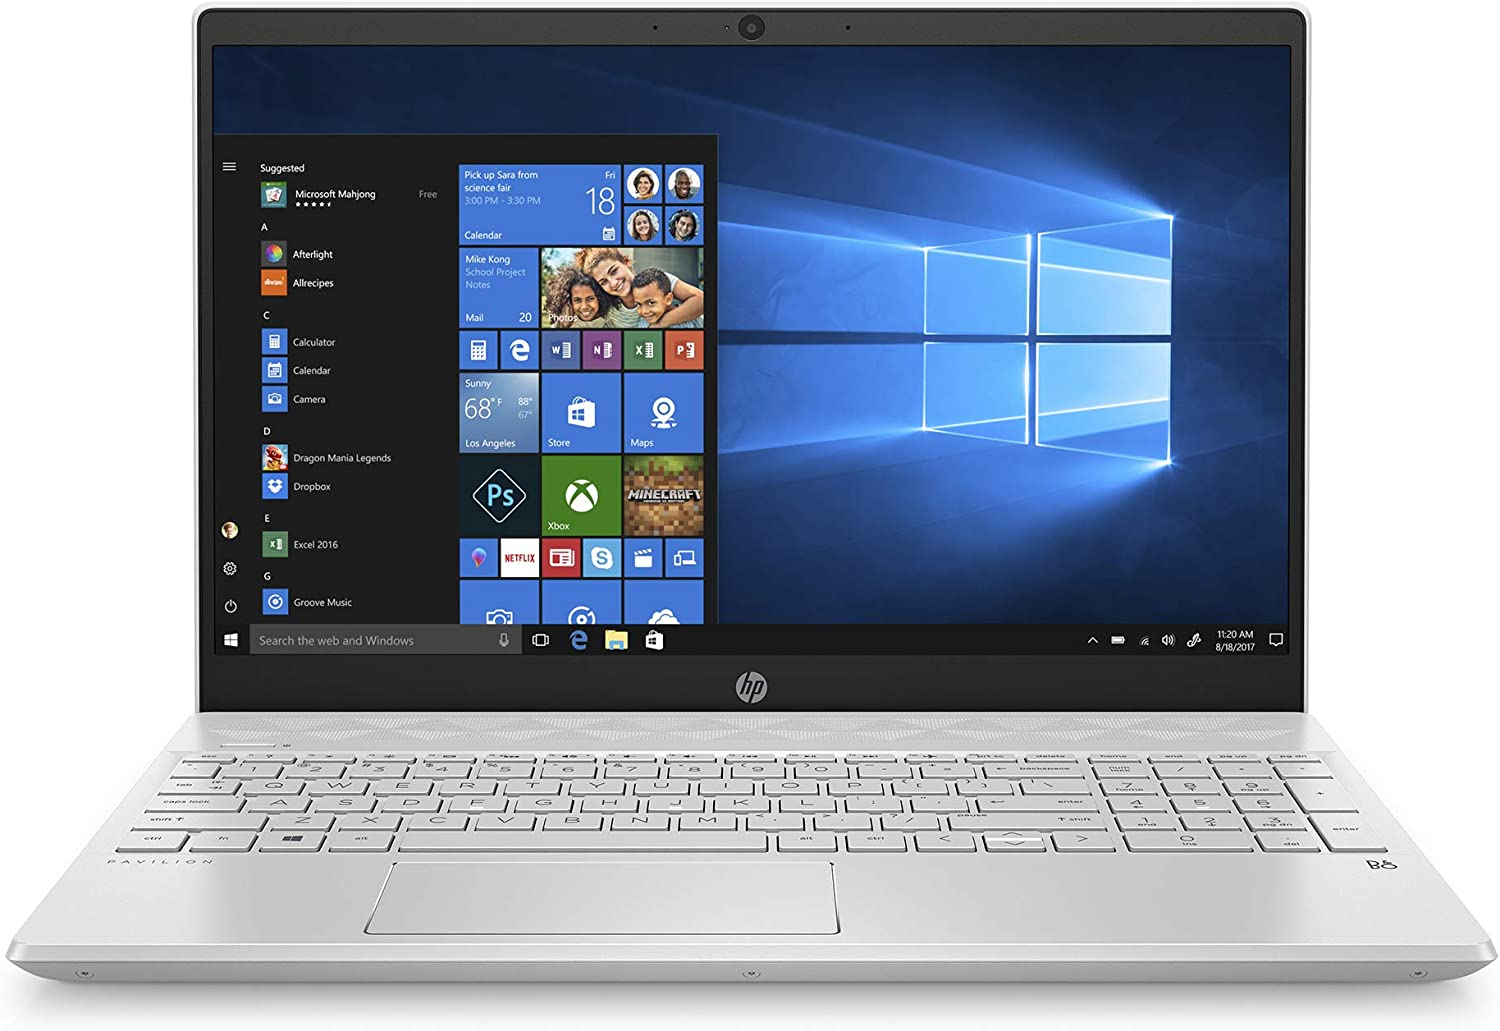 HP Pavilion 15-inch Laptop, Intel Core i7, 16 GB RAM, 512 GB SSD Storage, Intel Iris Plus Graphics, Windows 10 Home